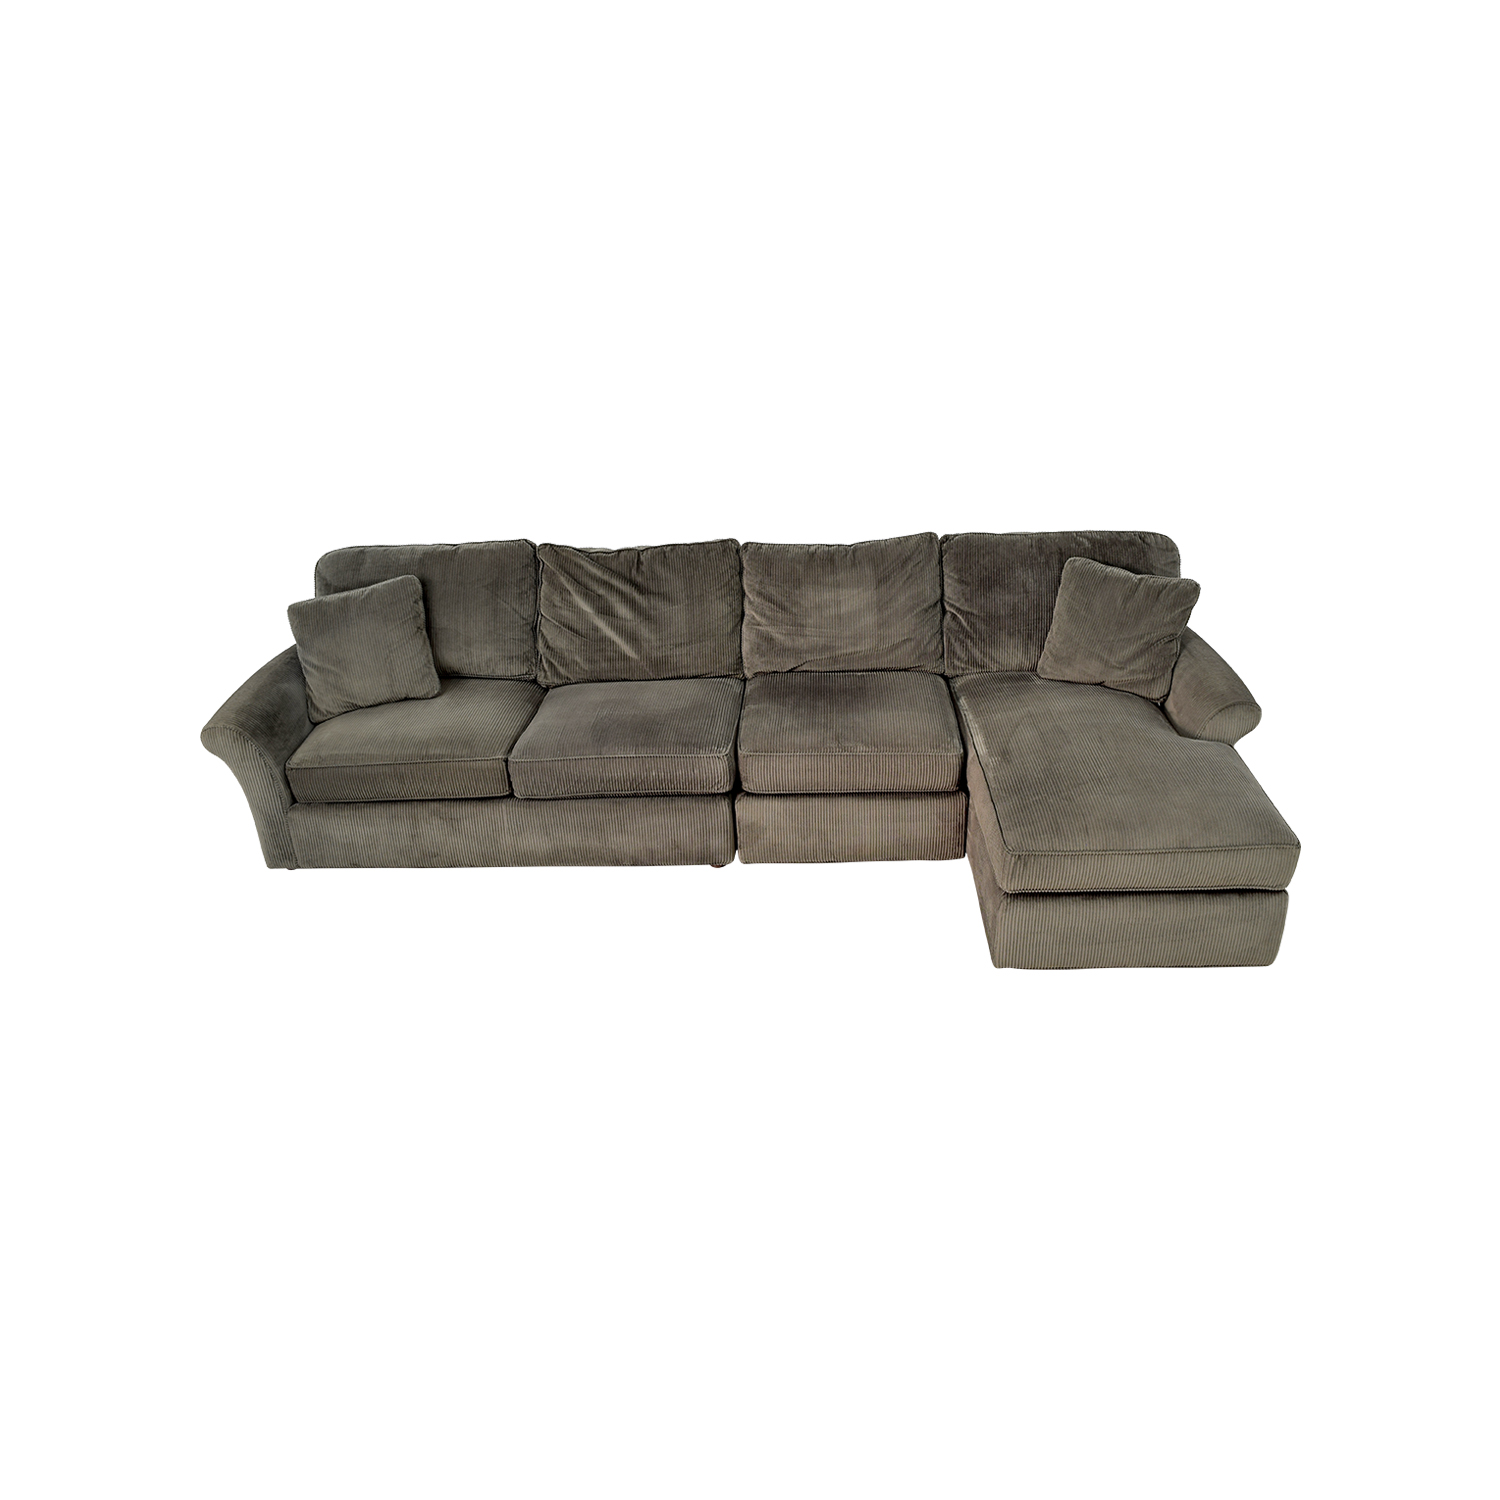 Macys Furniture Nyc: Macy's Macy's Modern Concepts Charcoal Gray